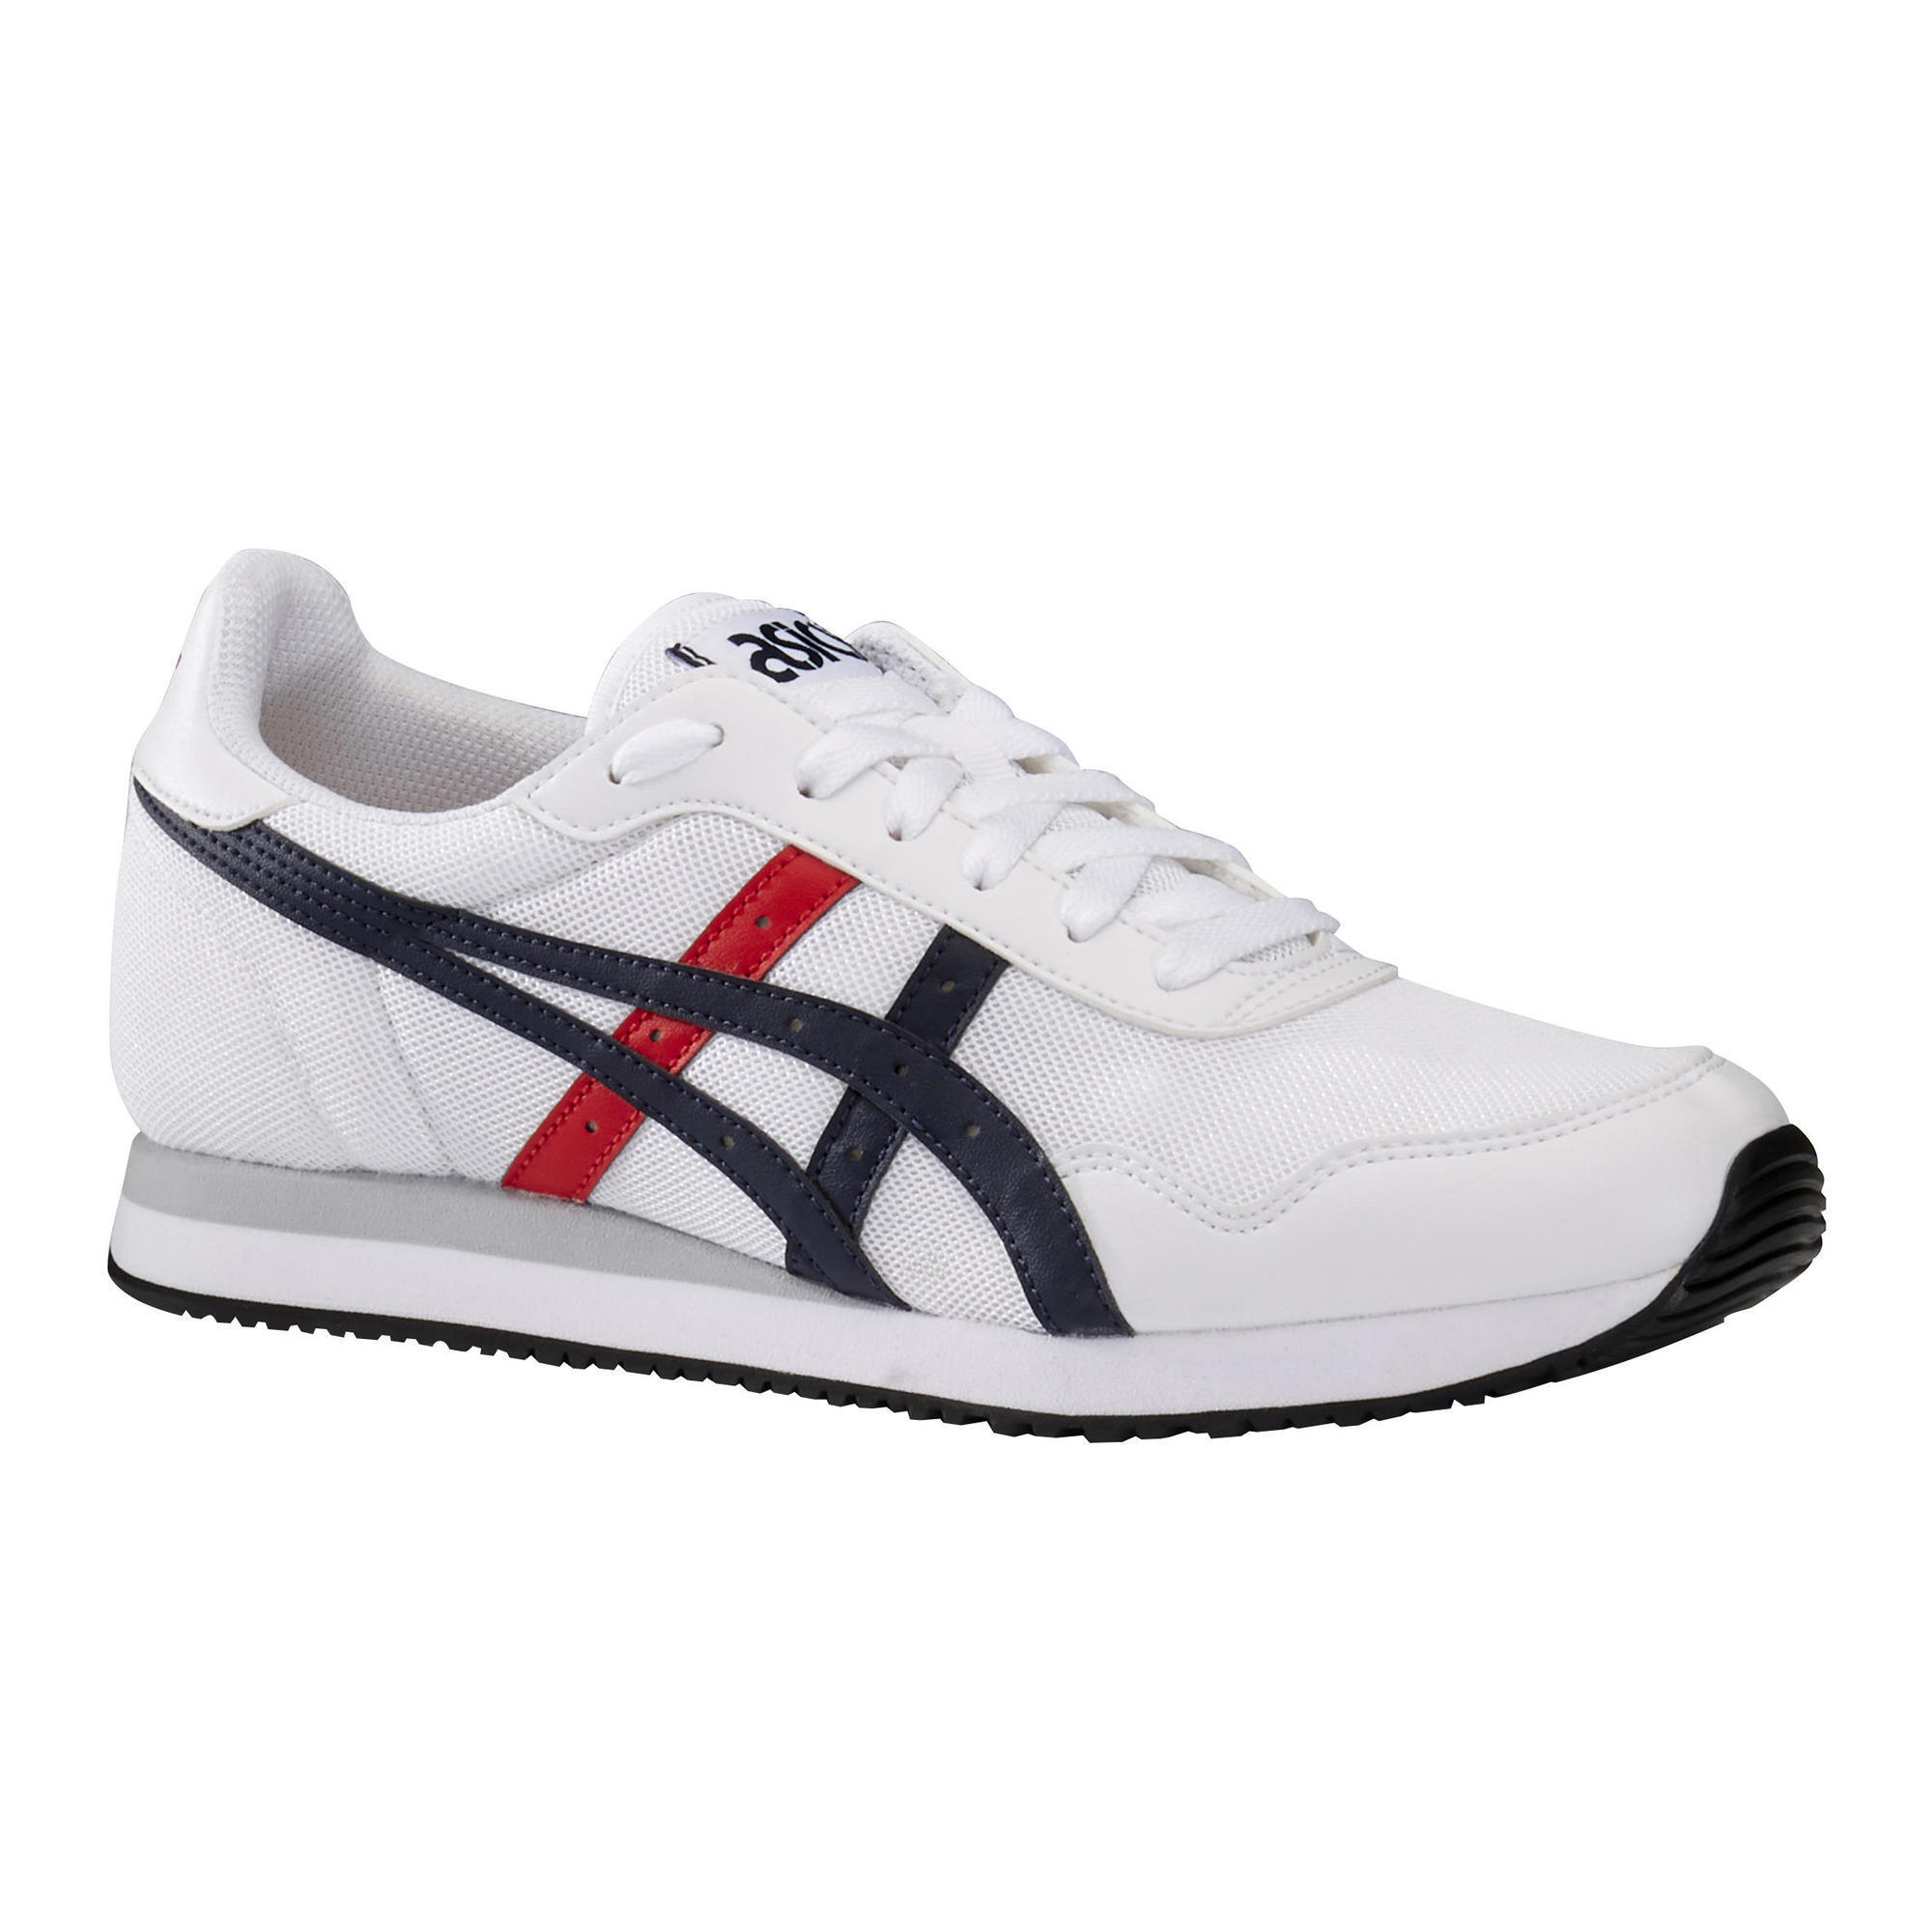 Chaussures marche active homme Asics Tiger mesh blanc ASICS ...